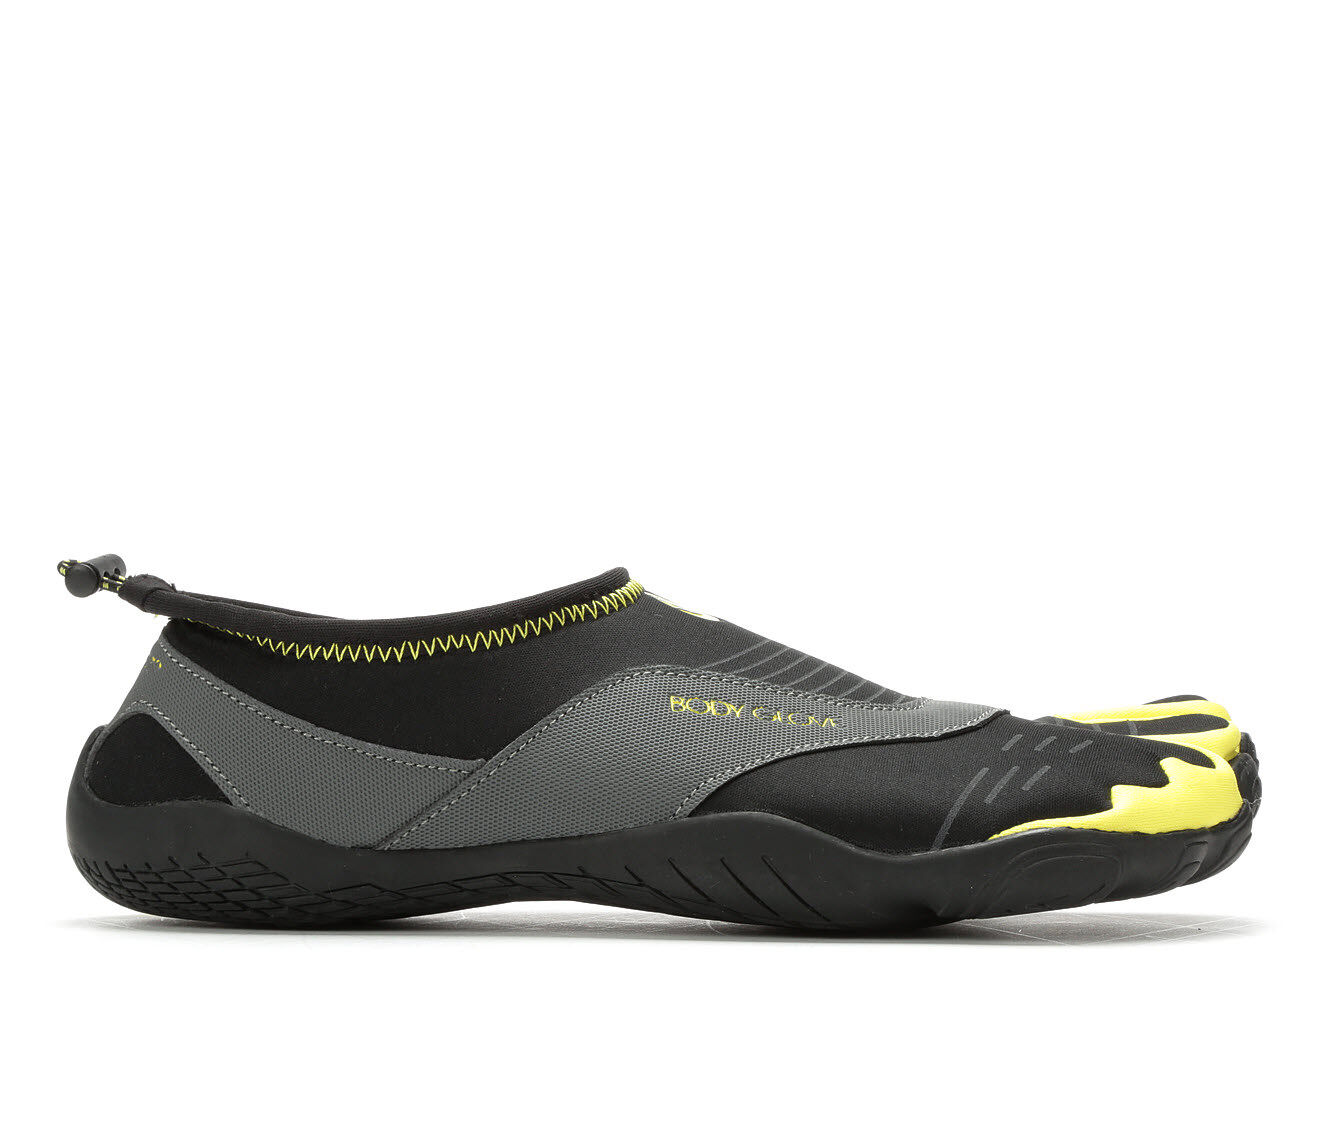 Mens Body Glove 3T Barefoot Cinch Water Shoes